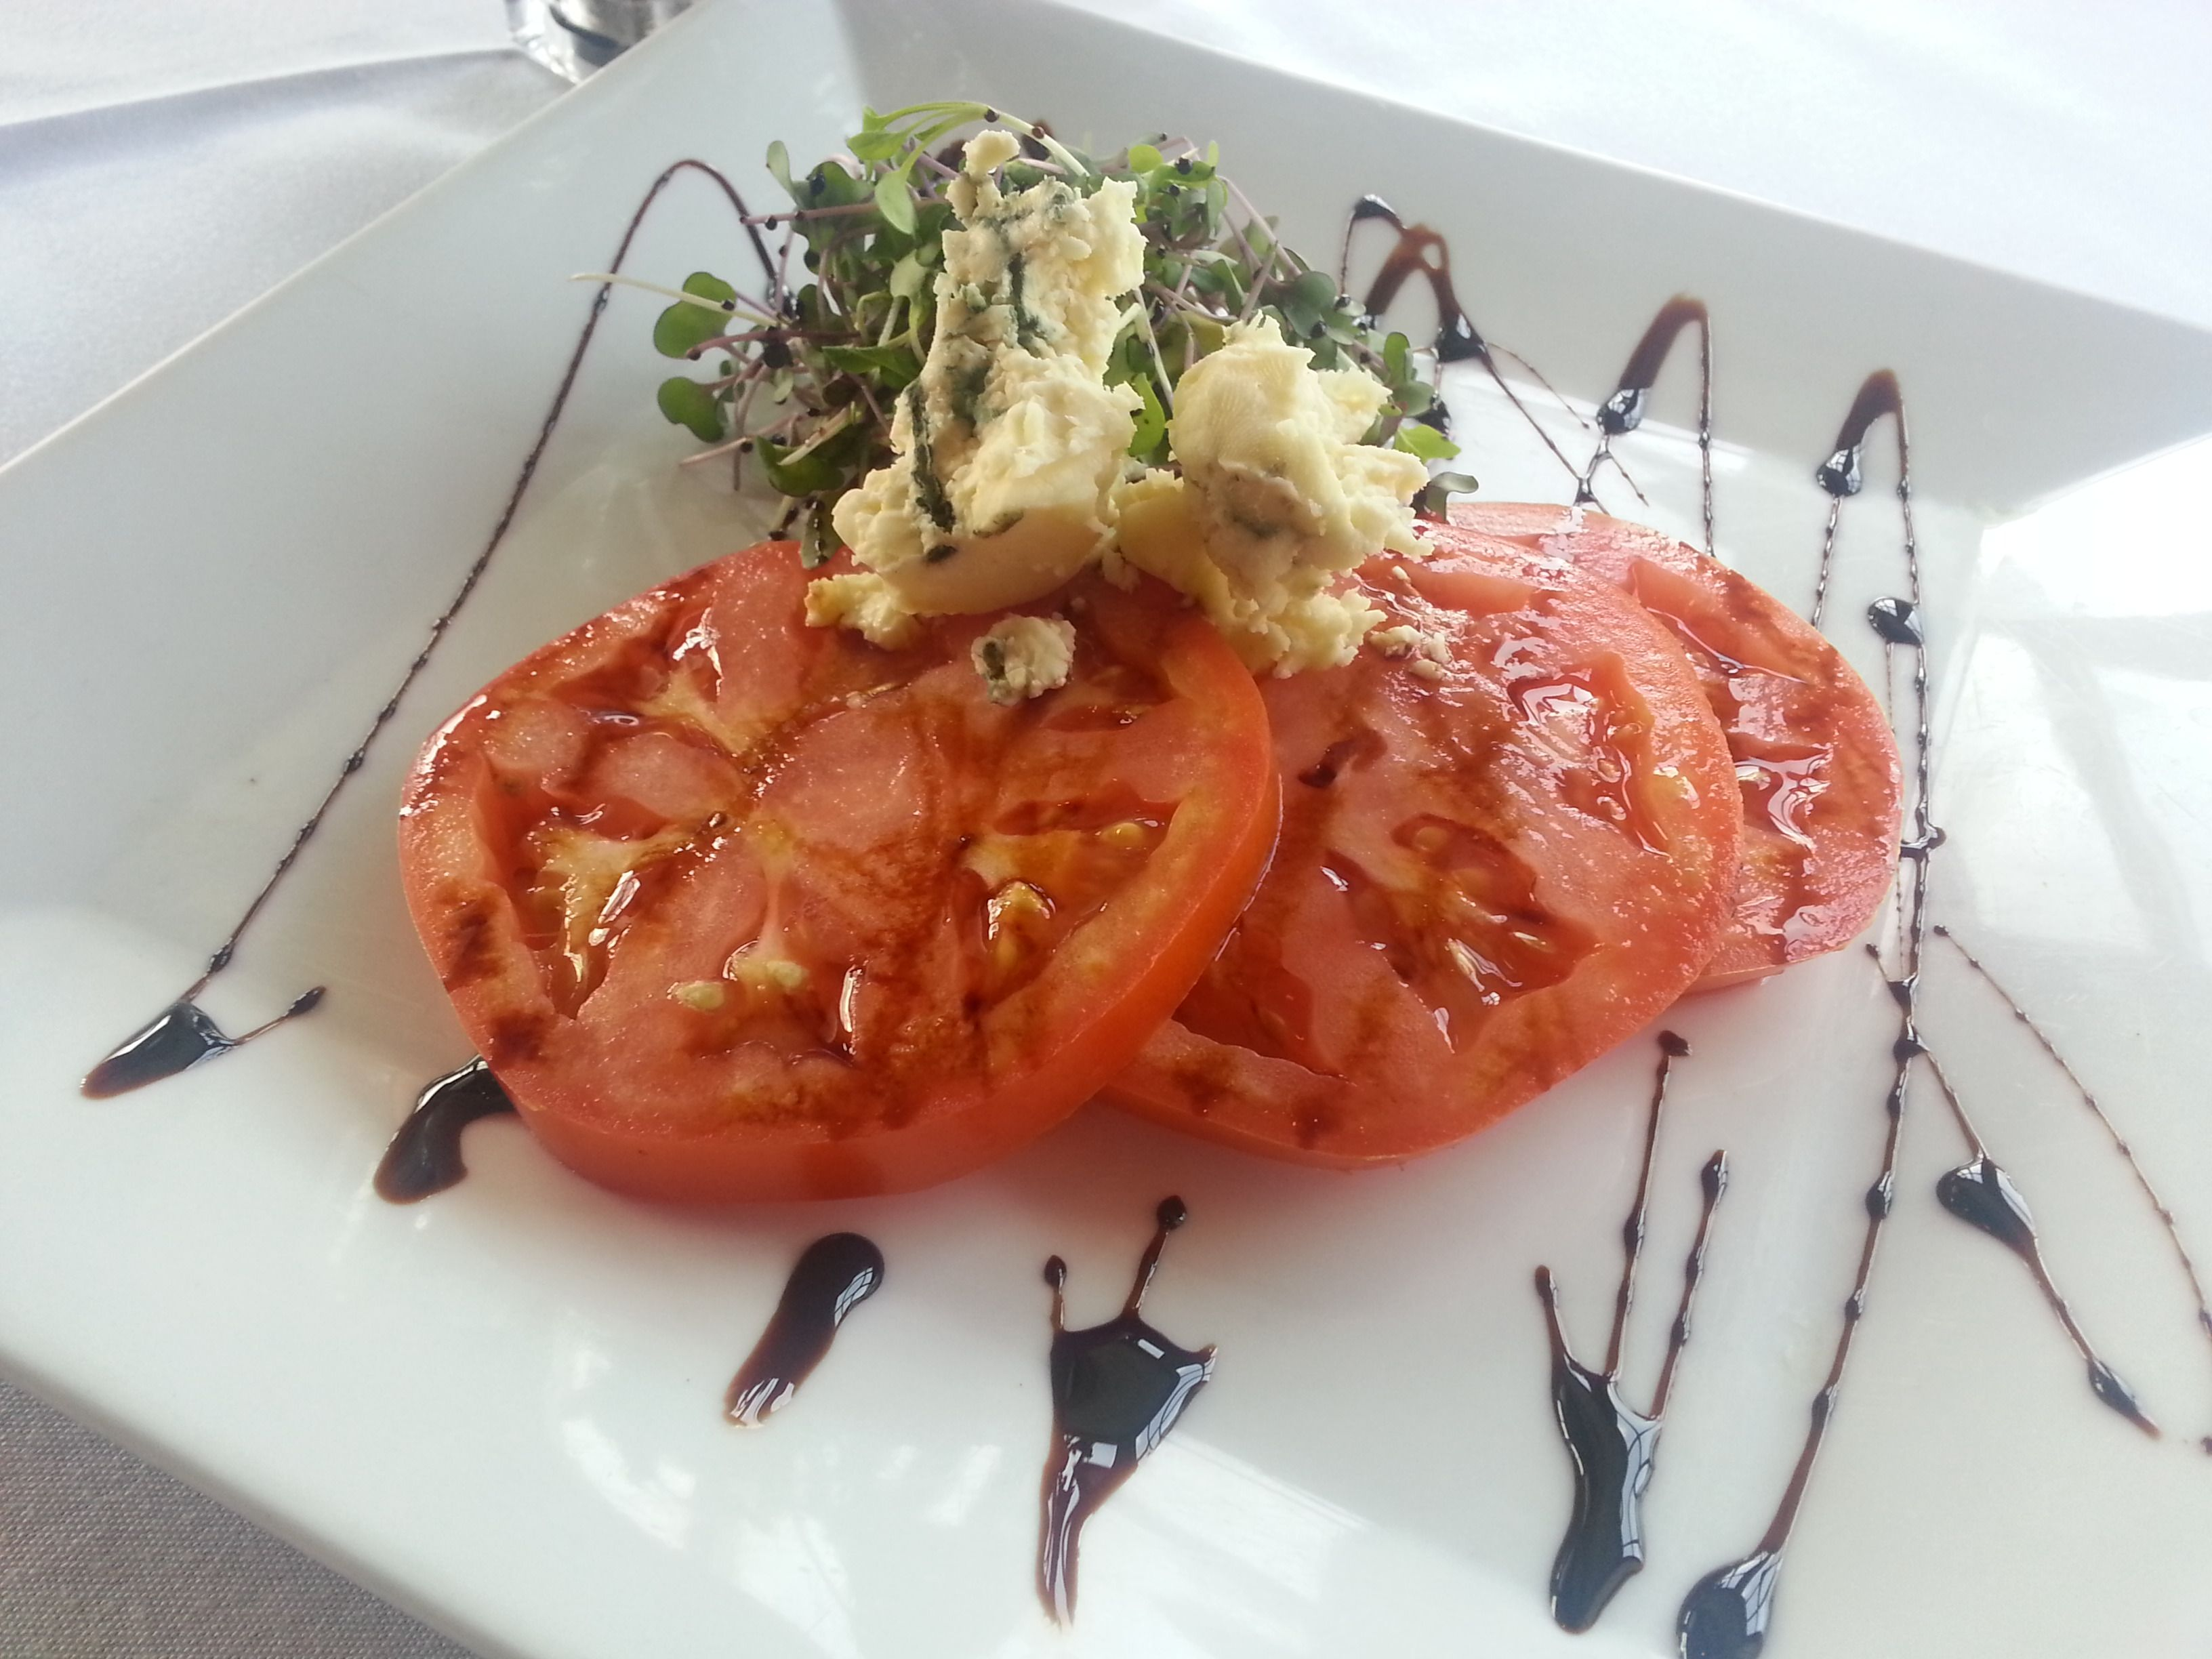 Beef steak tomato with micro greens crumbled